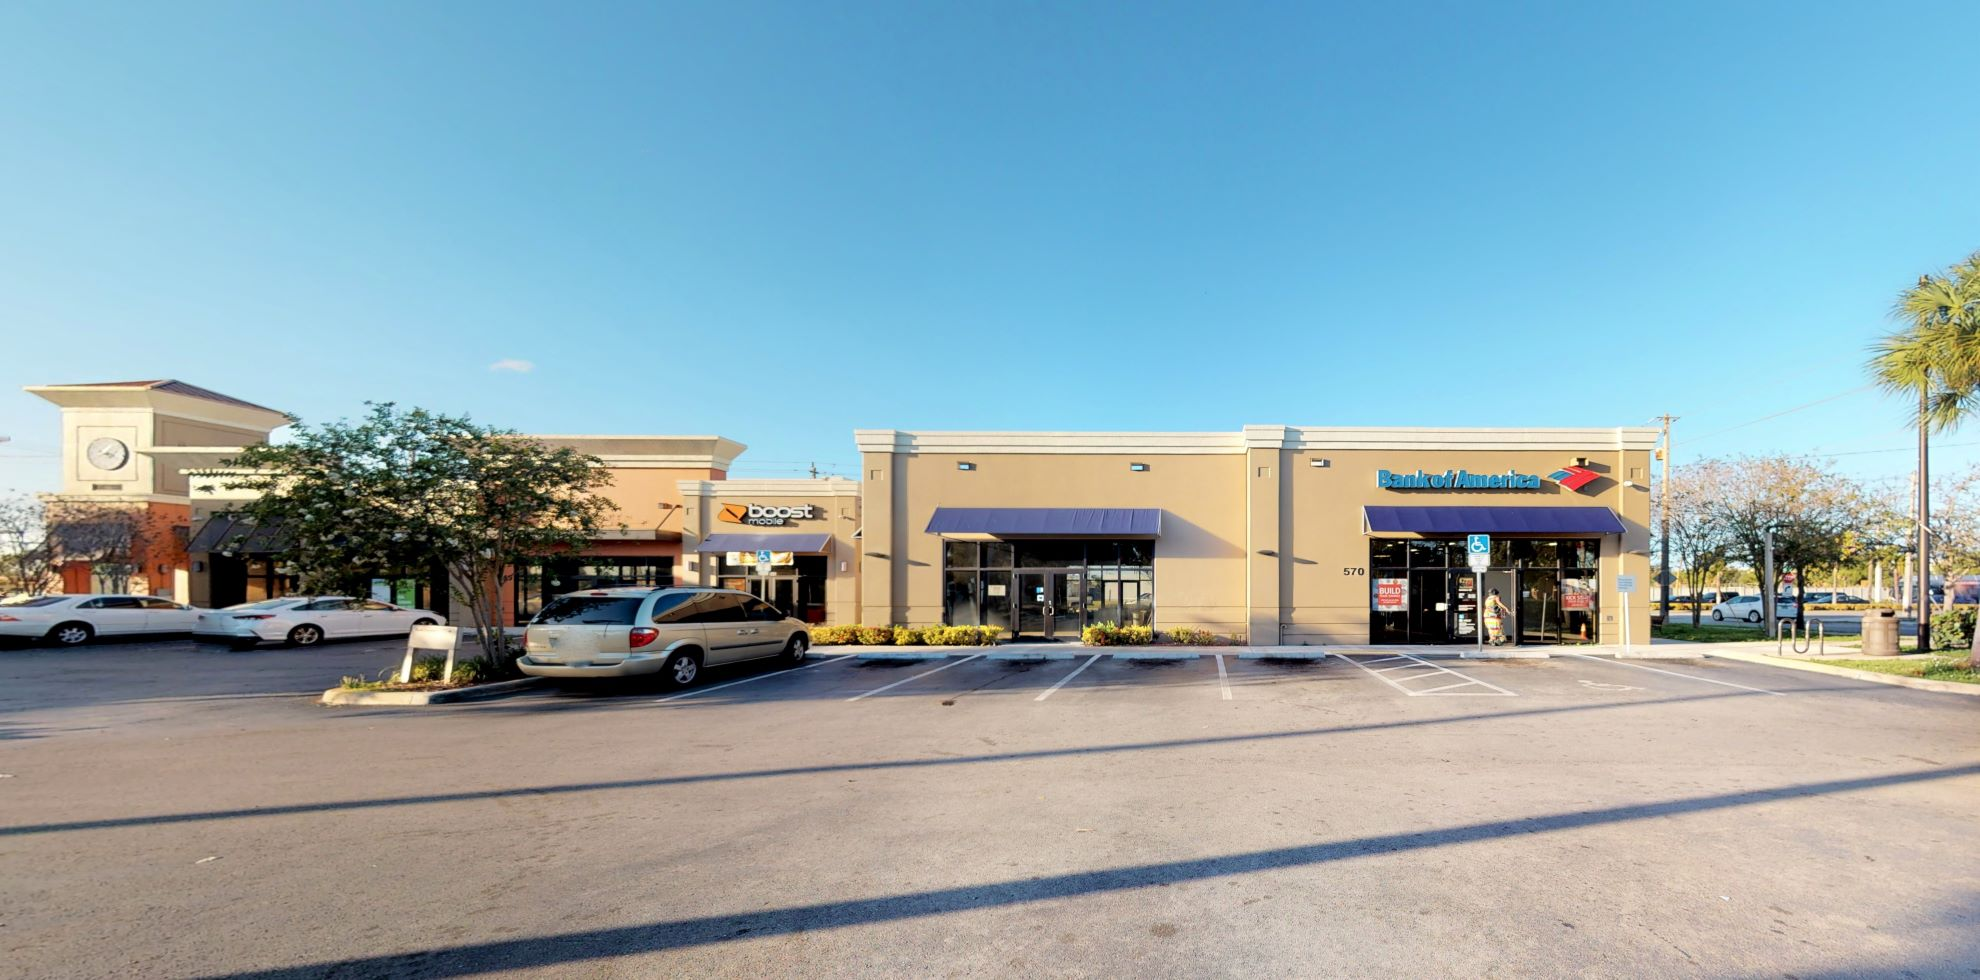 Bank of America financial center with drive-thru ATM | 570 NW 7th Ave, Fort Lauderdale, FL 33311